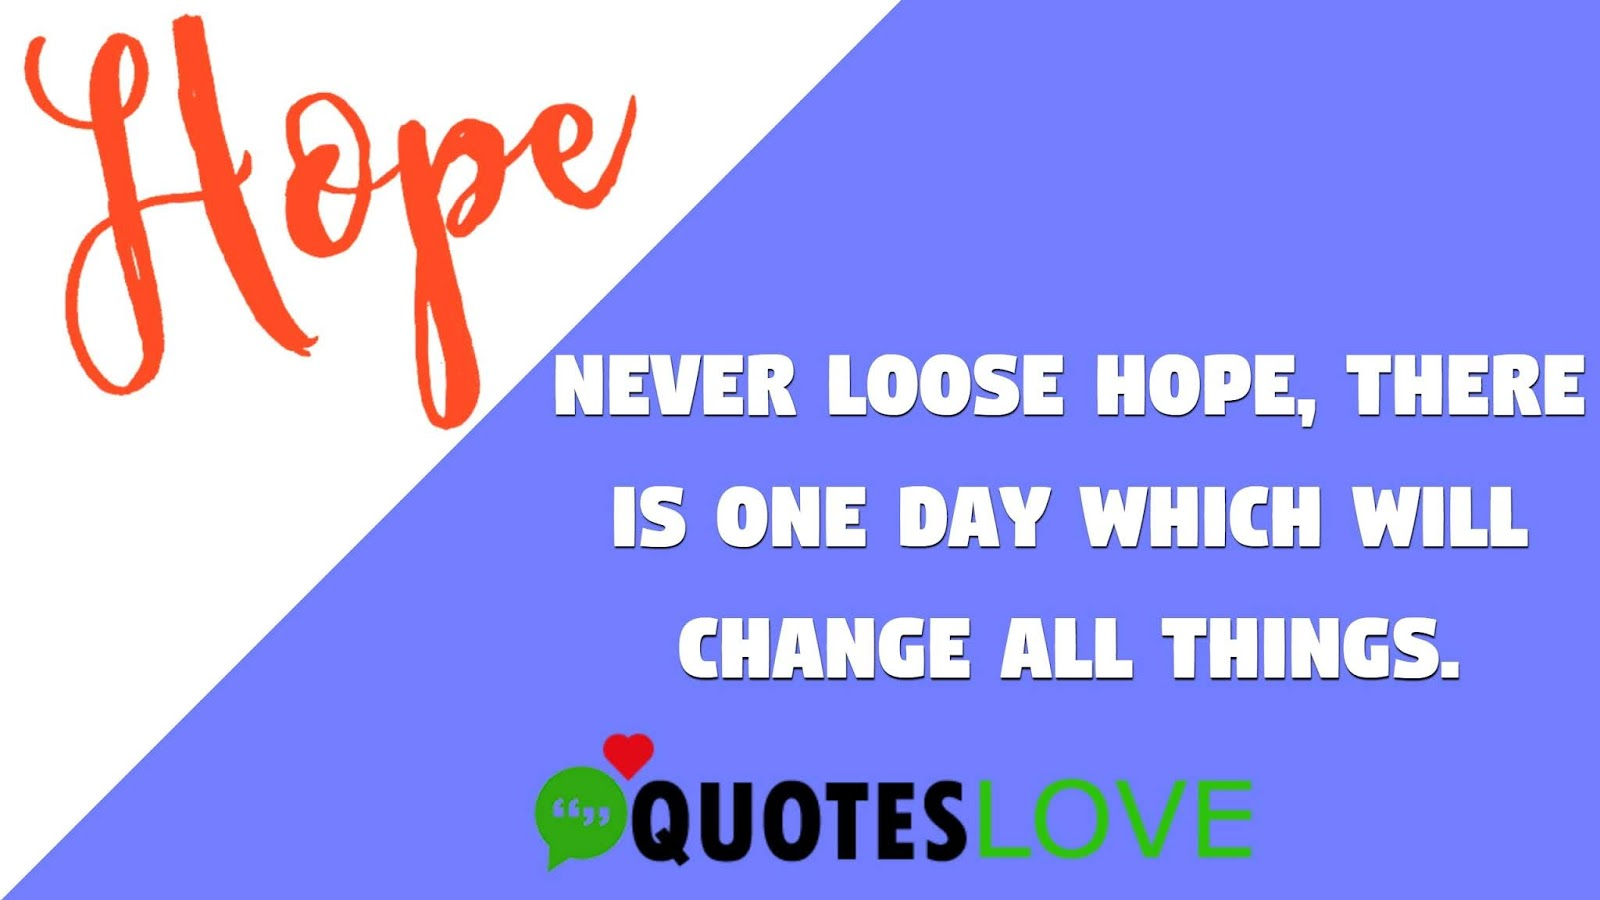 Never loose hope, There is one day which will change all things.